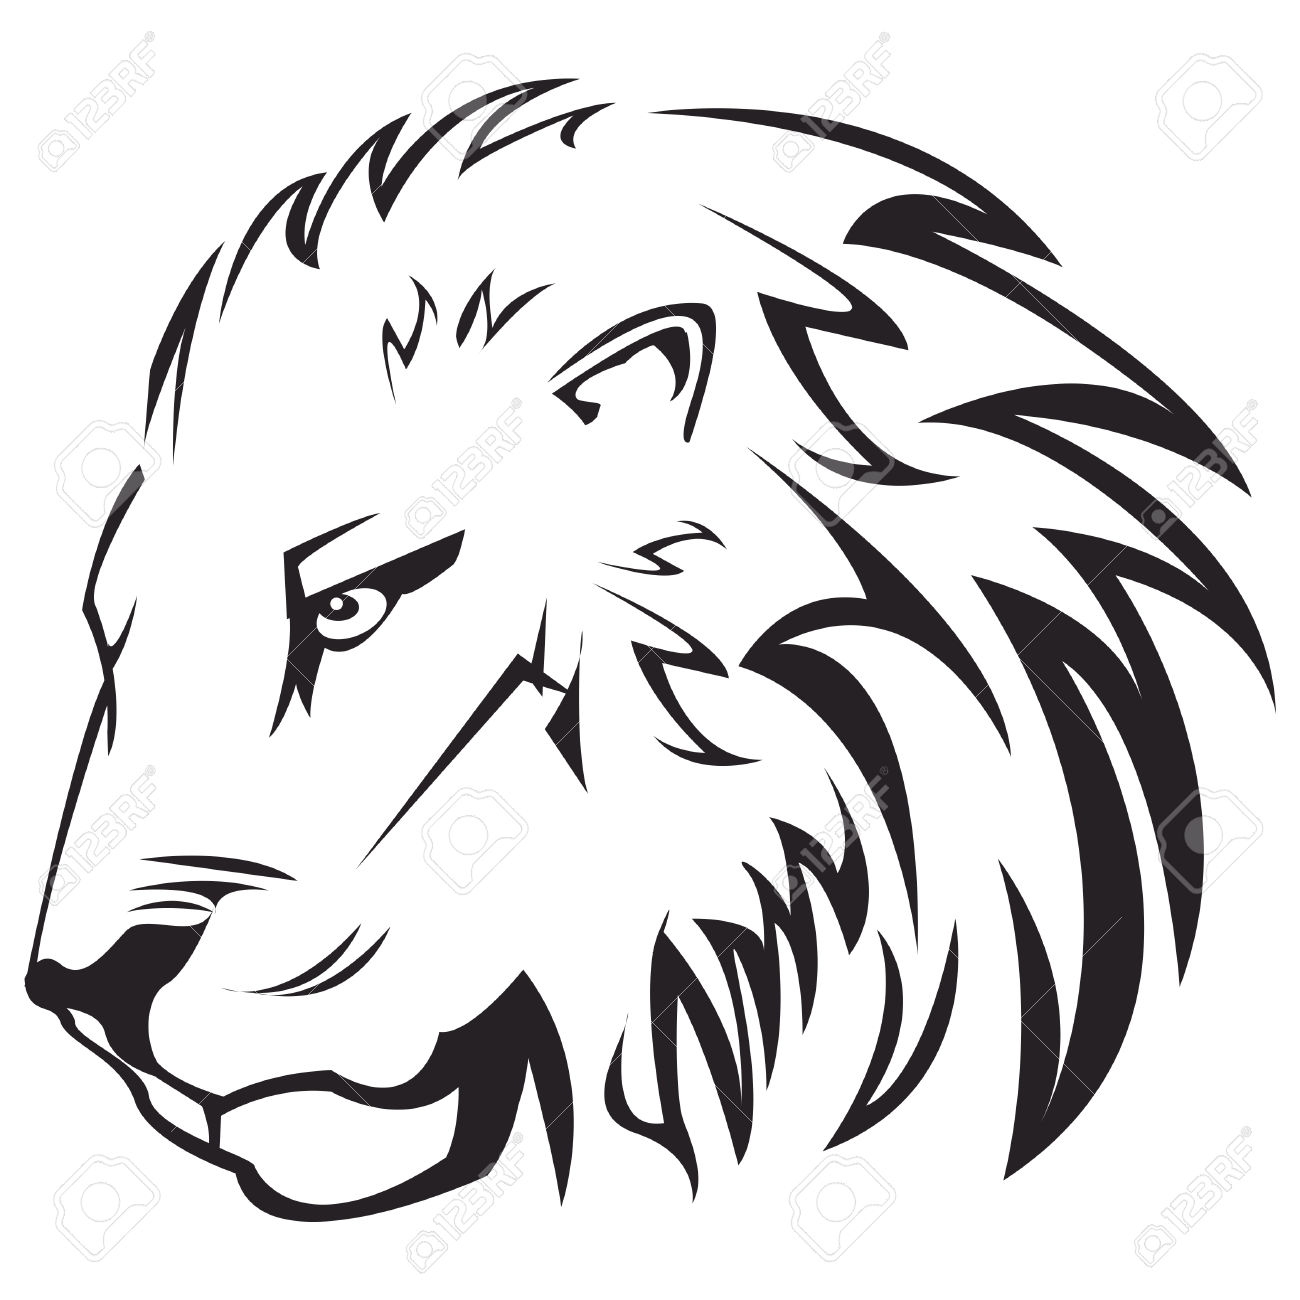 Aslan Clipart Black And White Outline 20 Free Cliparts